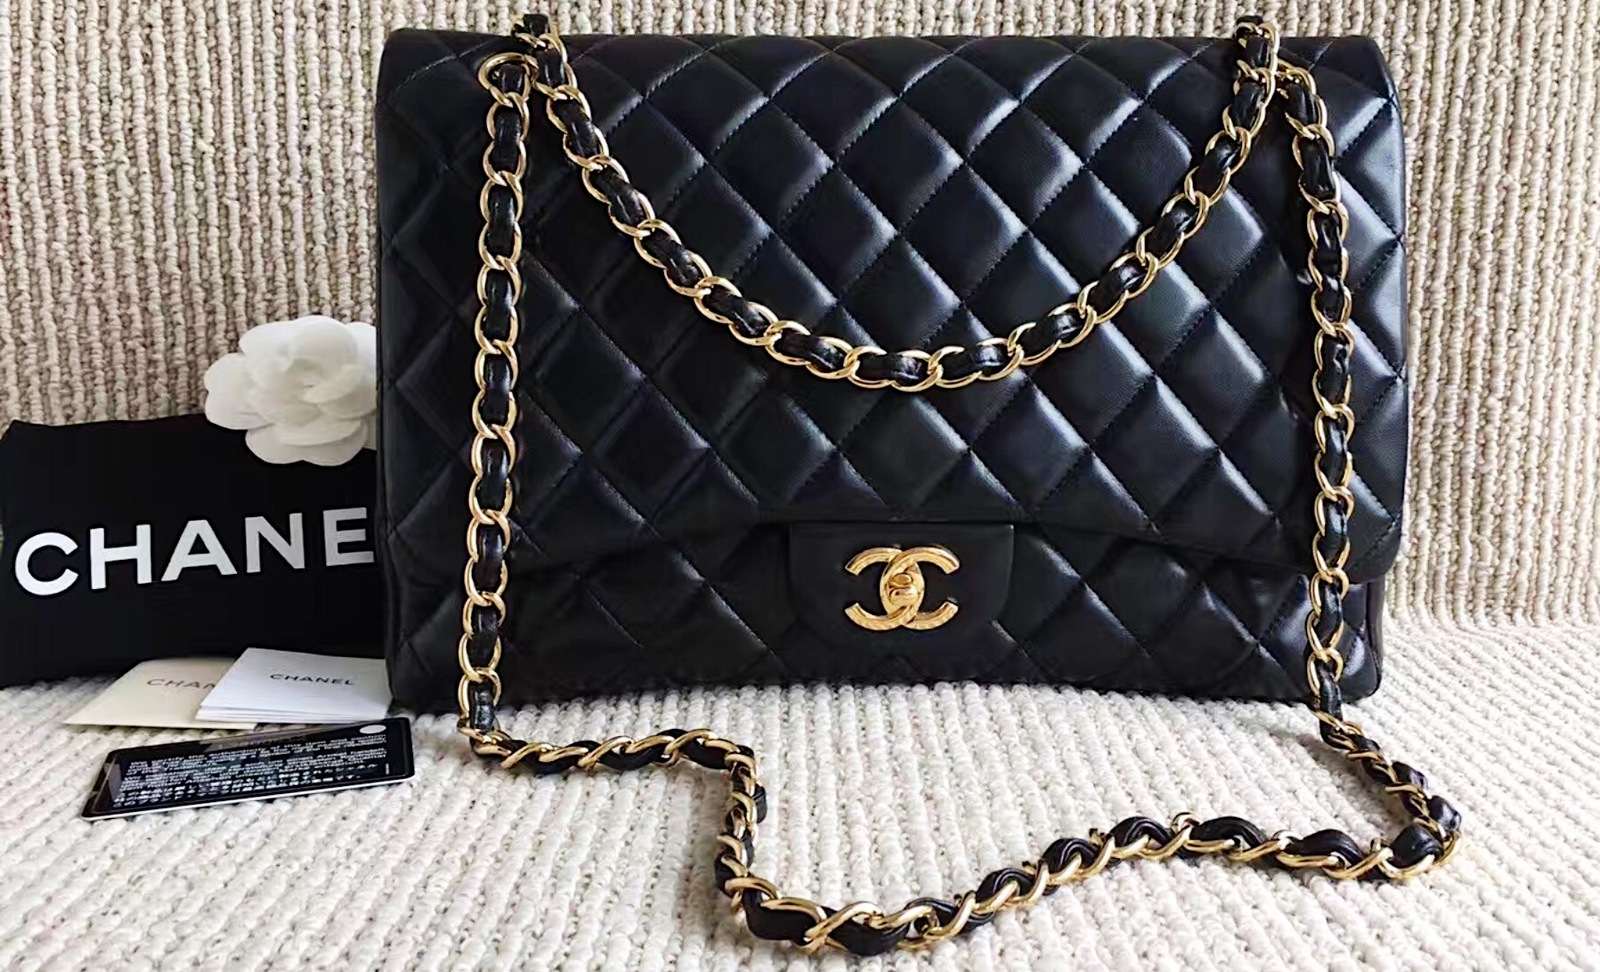 60bf213590a7 100% Authentic Chanel Black Quilted Lambskin Maxi Classic Flap Bag ...